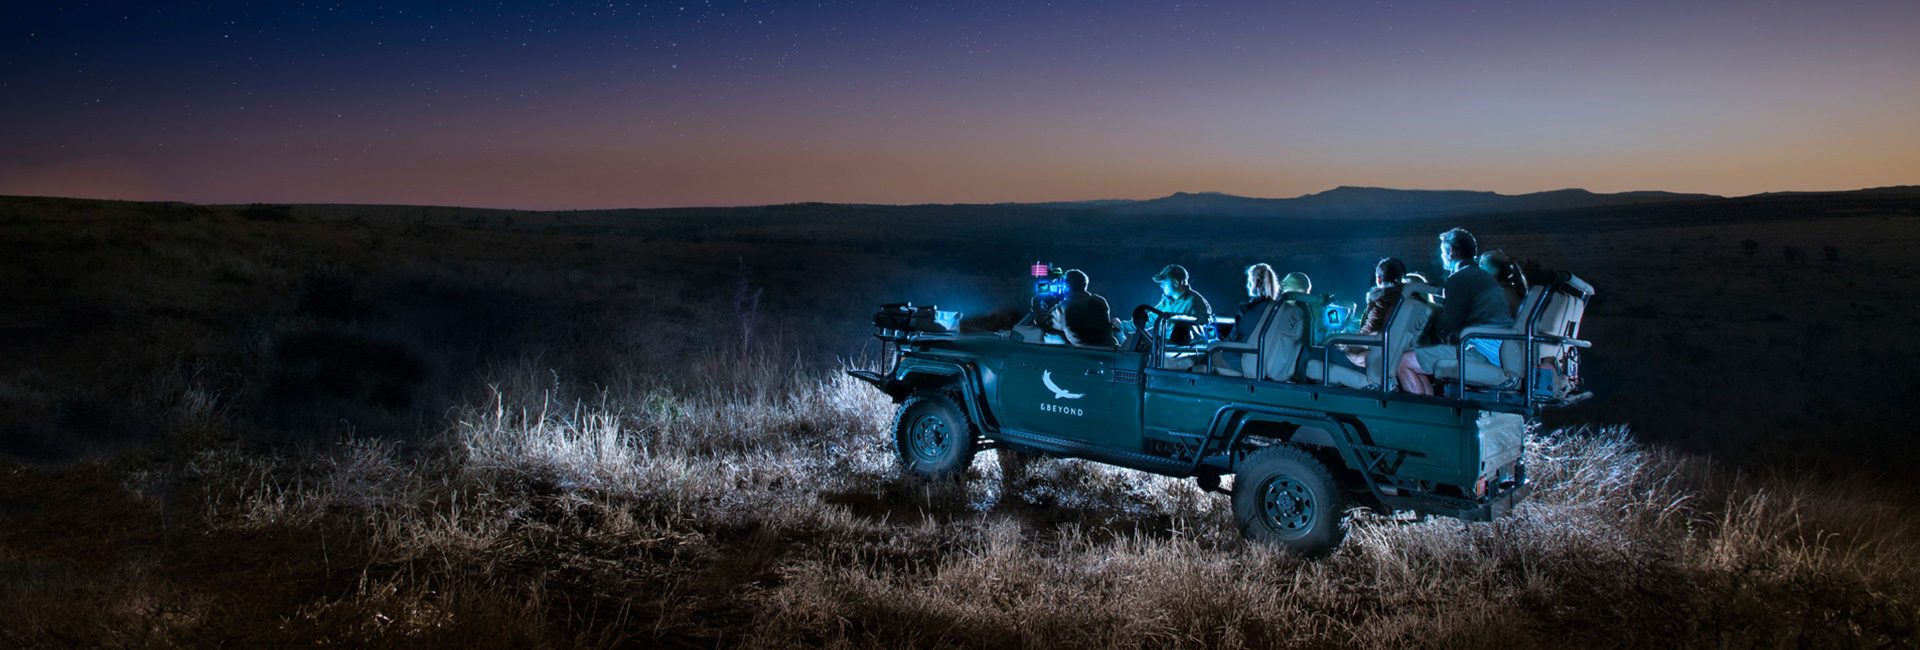 Night eye experience at Phinda Game Reserve